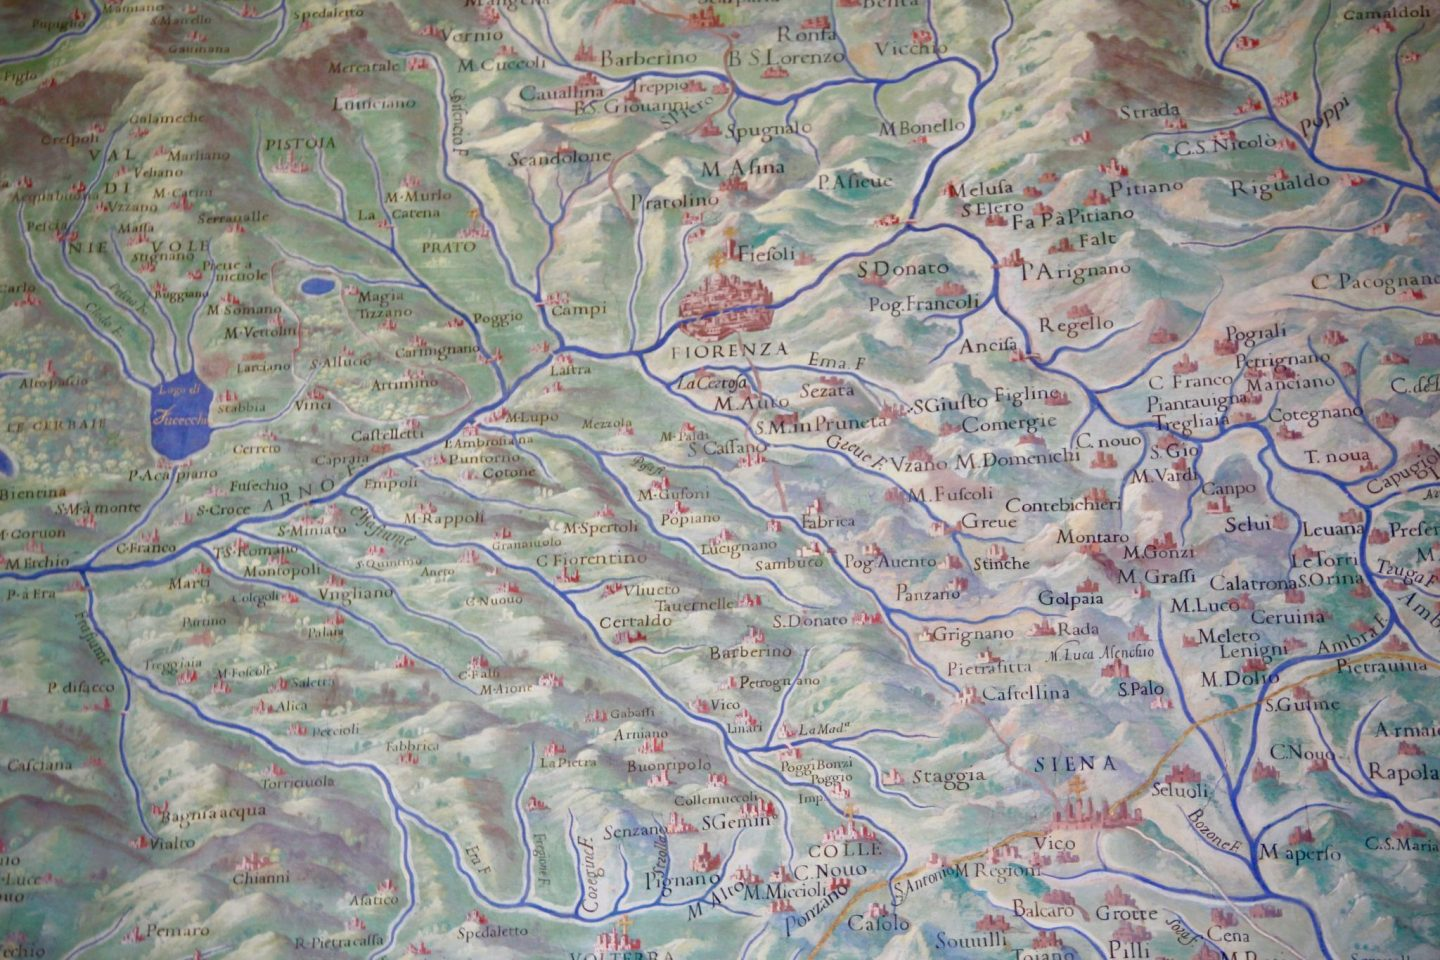 Vatican Museum Map of Tuscany ... 24 hours in Rome ... The Spectacular Adventurer